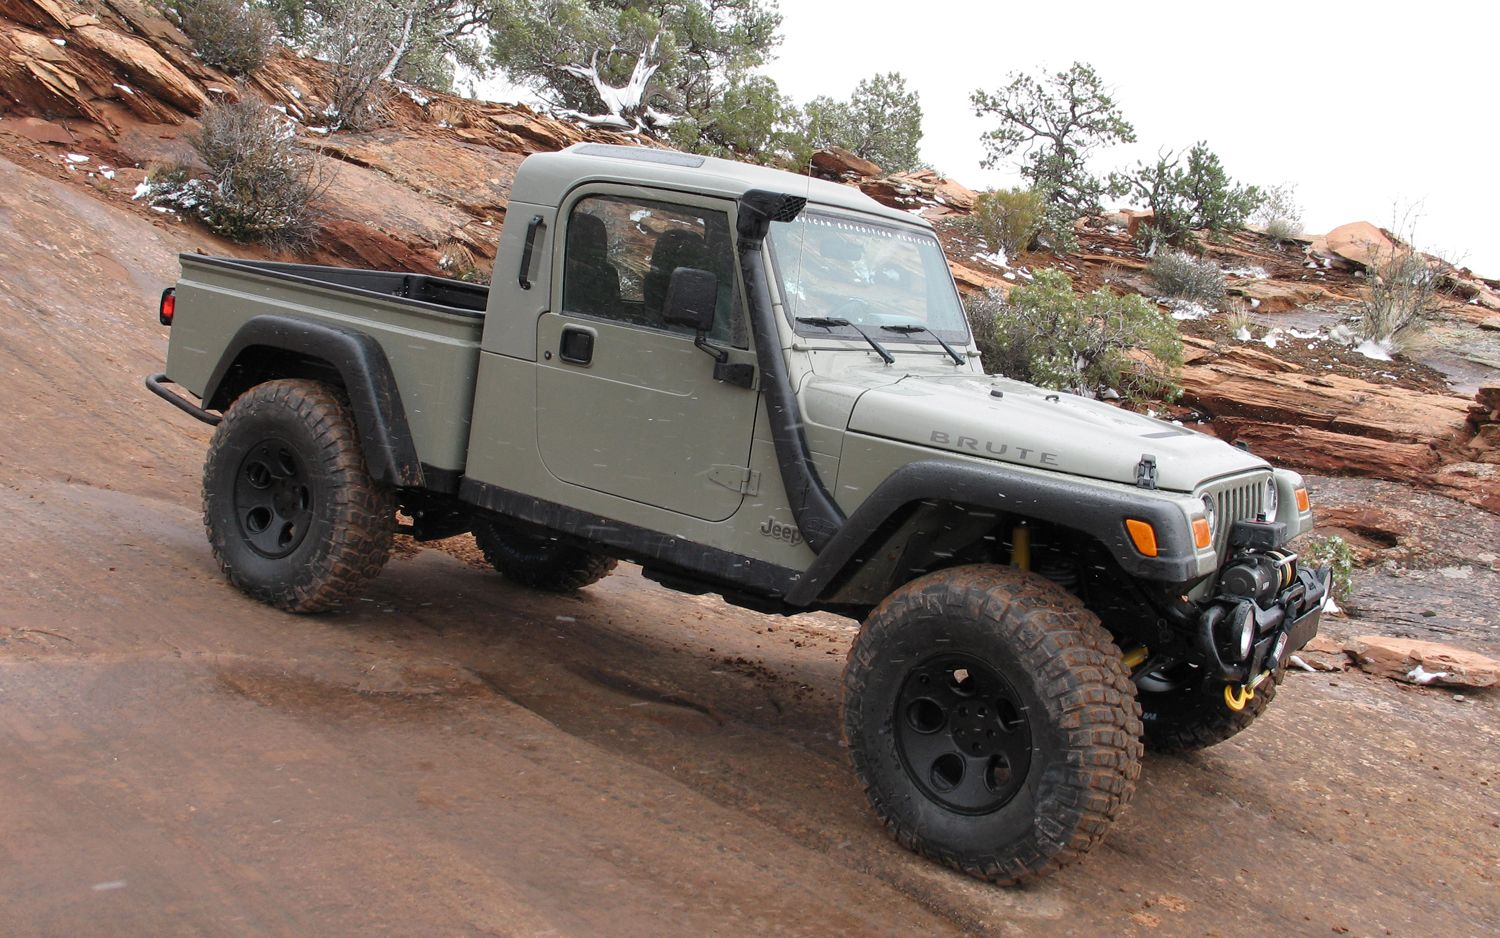 Jeep Wrangler Truck Conversion By Aev Called The Brute Badass Jeep Brute Jeep Suv Willys Jeep